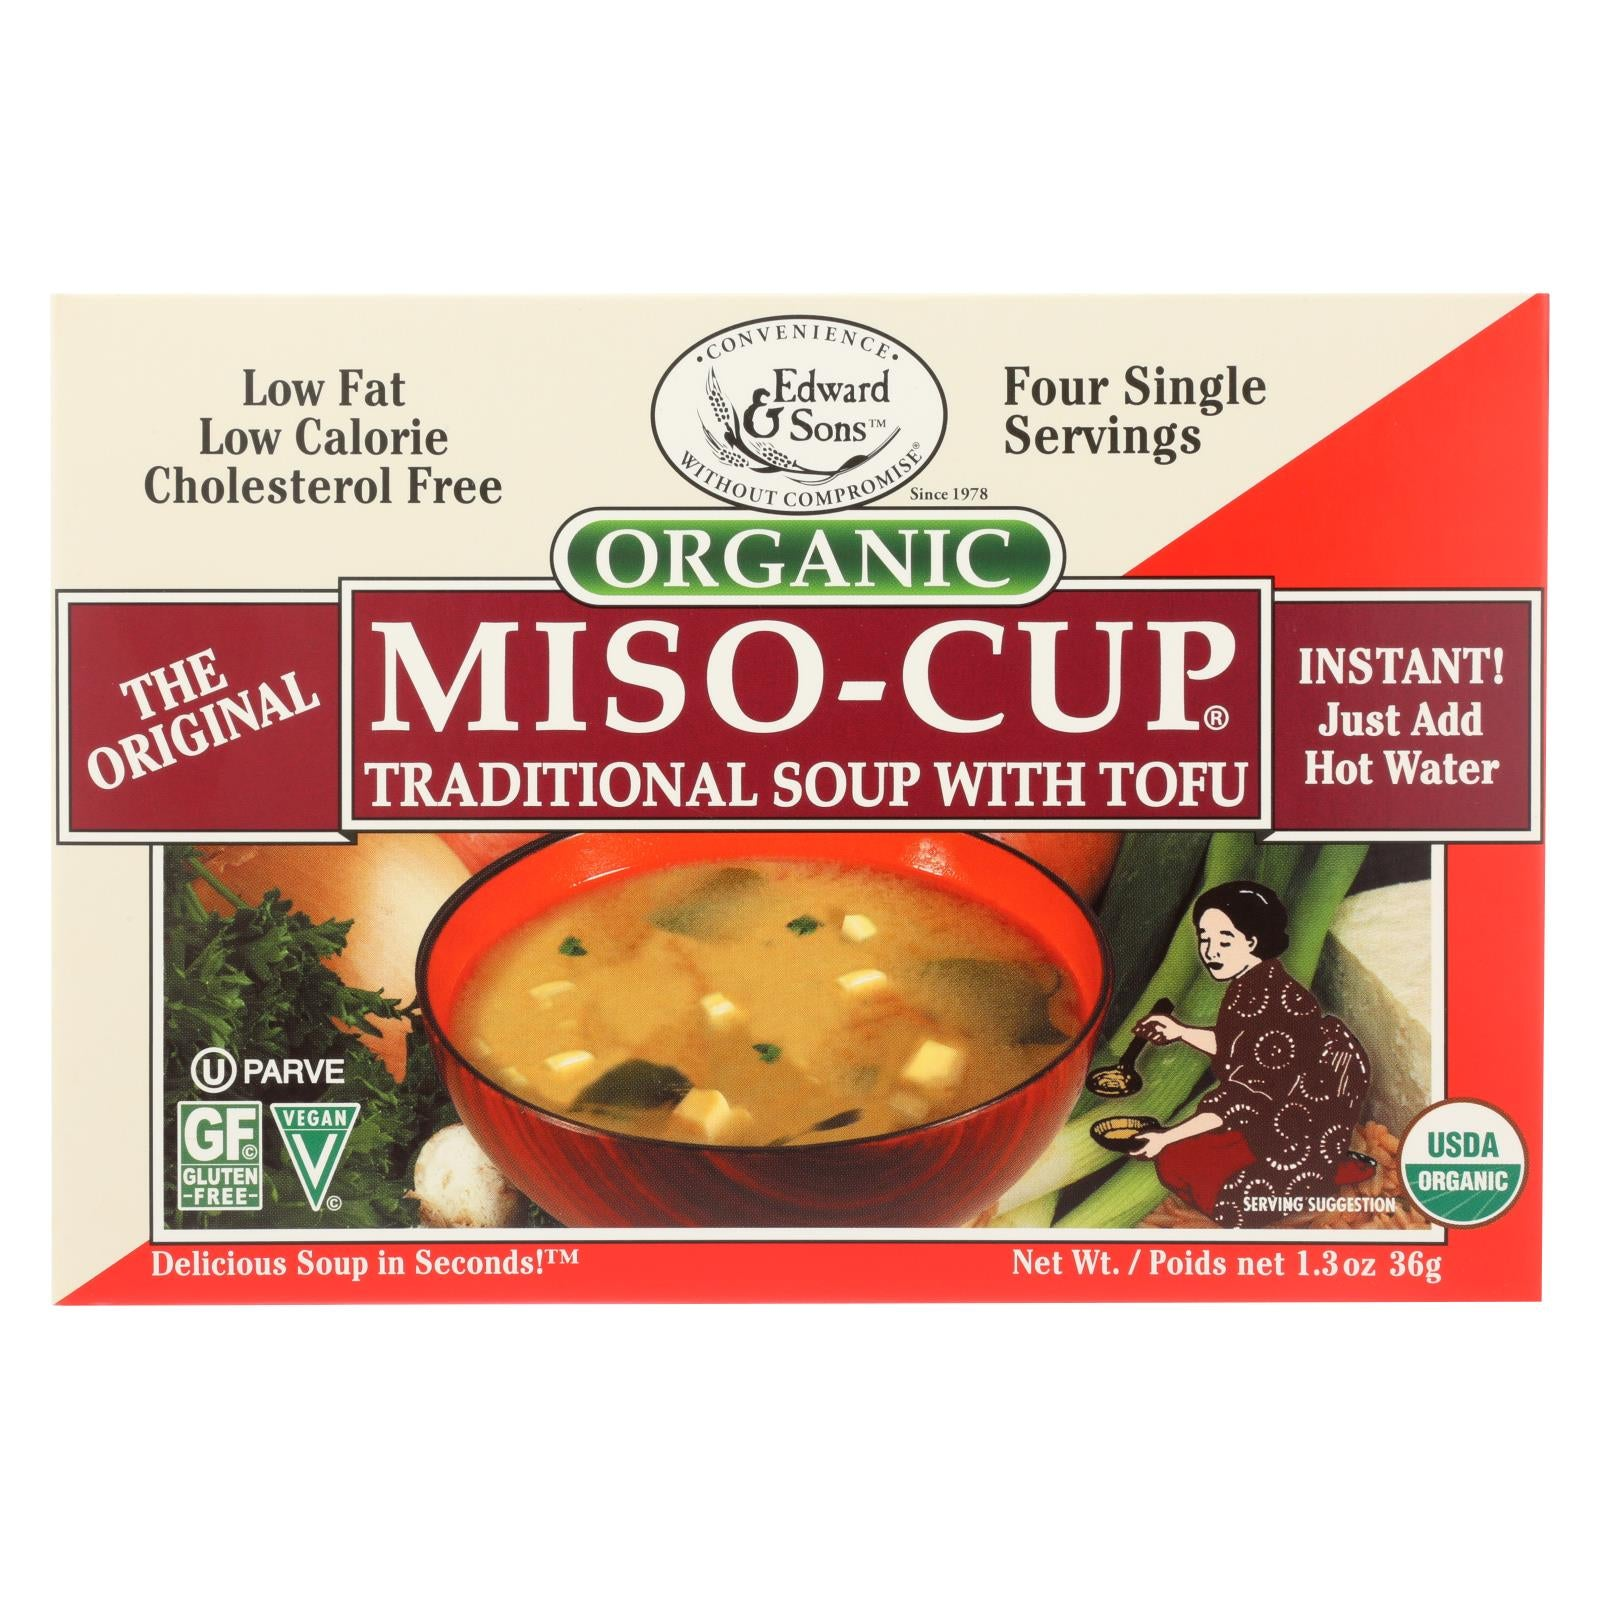 Edward And Sons Organic Traditional Miso - Cup - Case Of 12 - 1.3 Oz. HG0943837